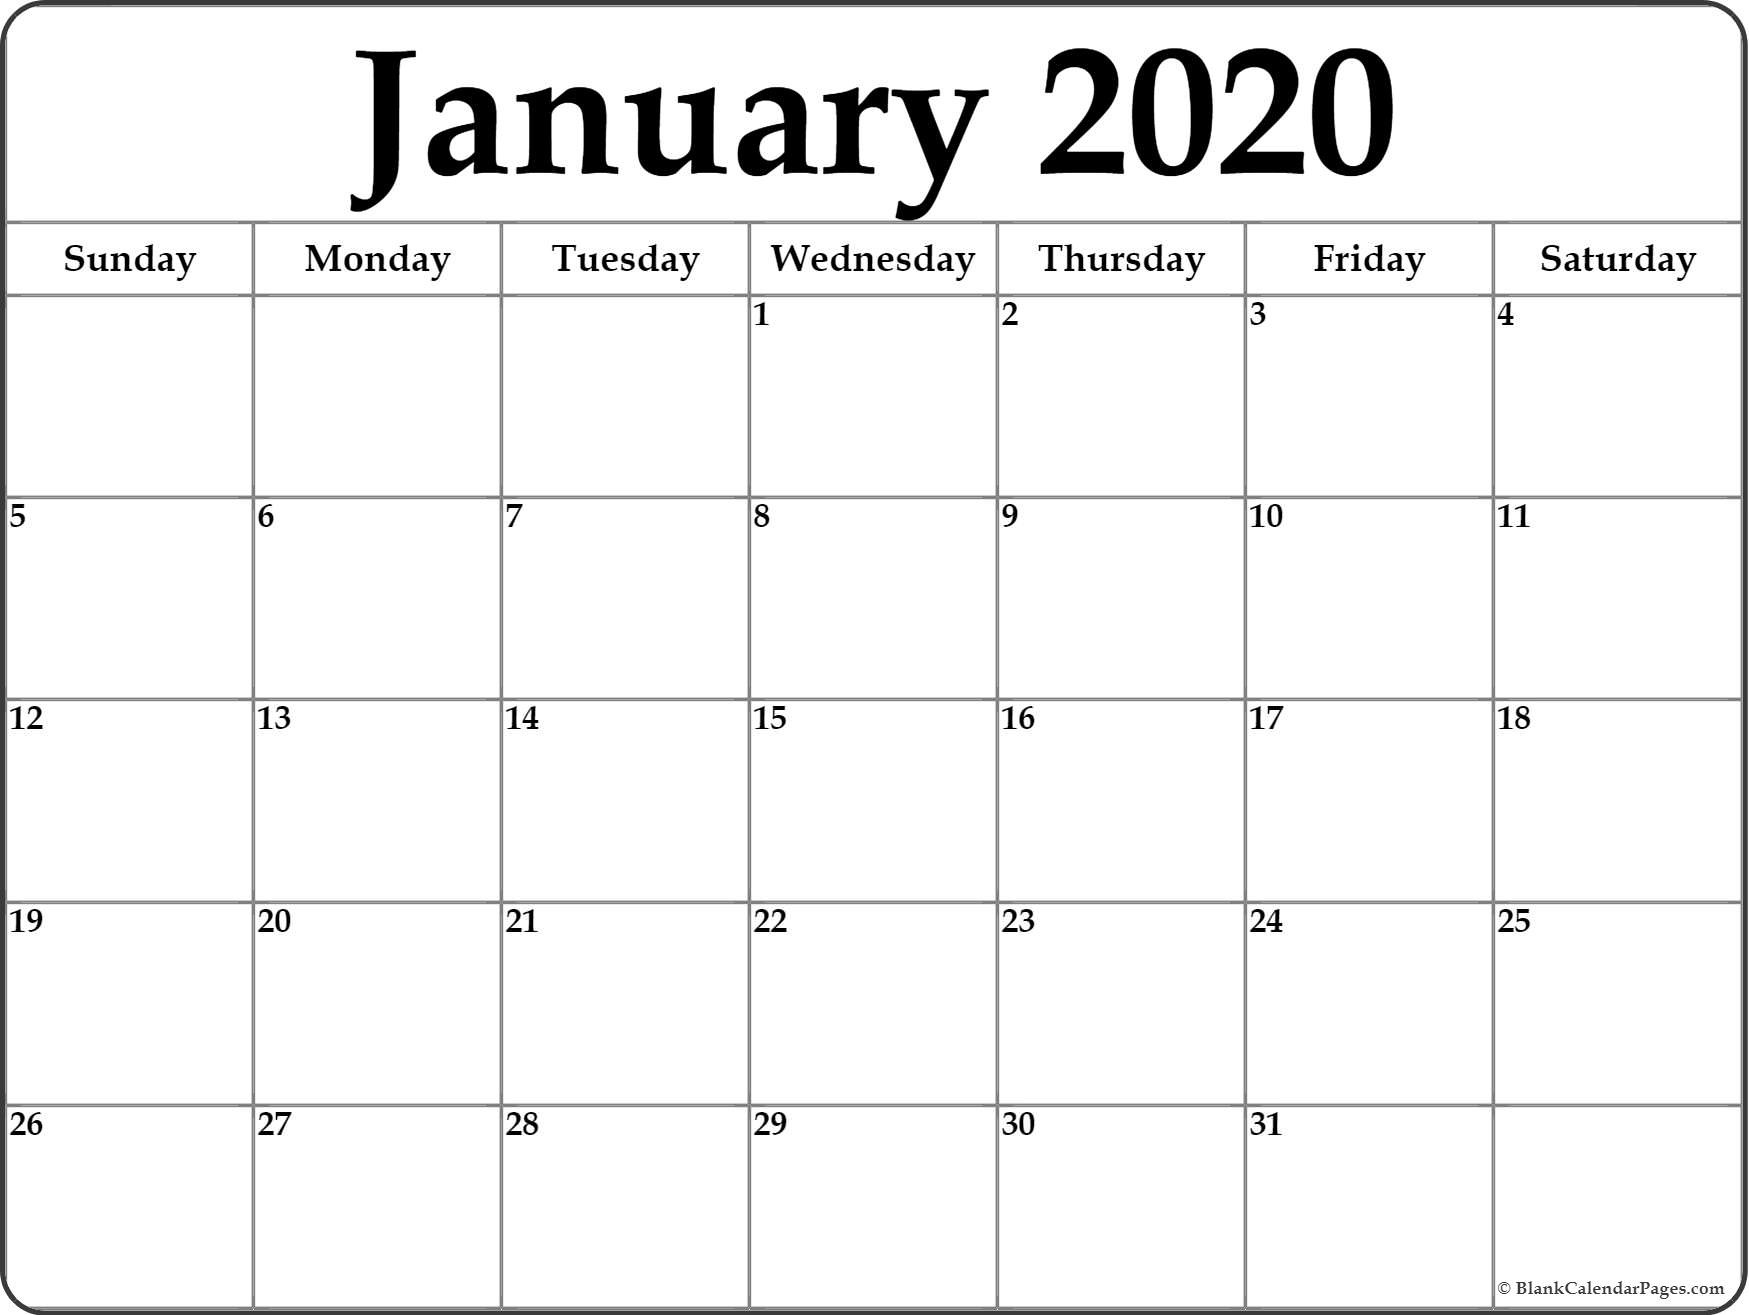 January 2020 Calendar | Free Printable Monthly Calendars-Printable 2020 Monthly Calendar Monday Start